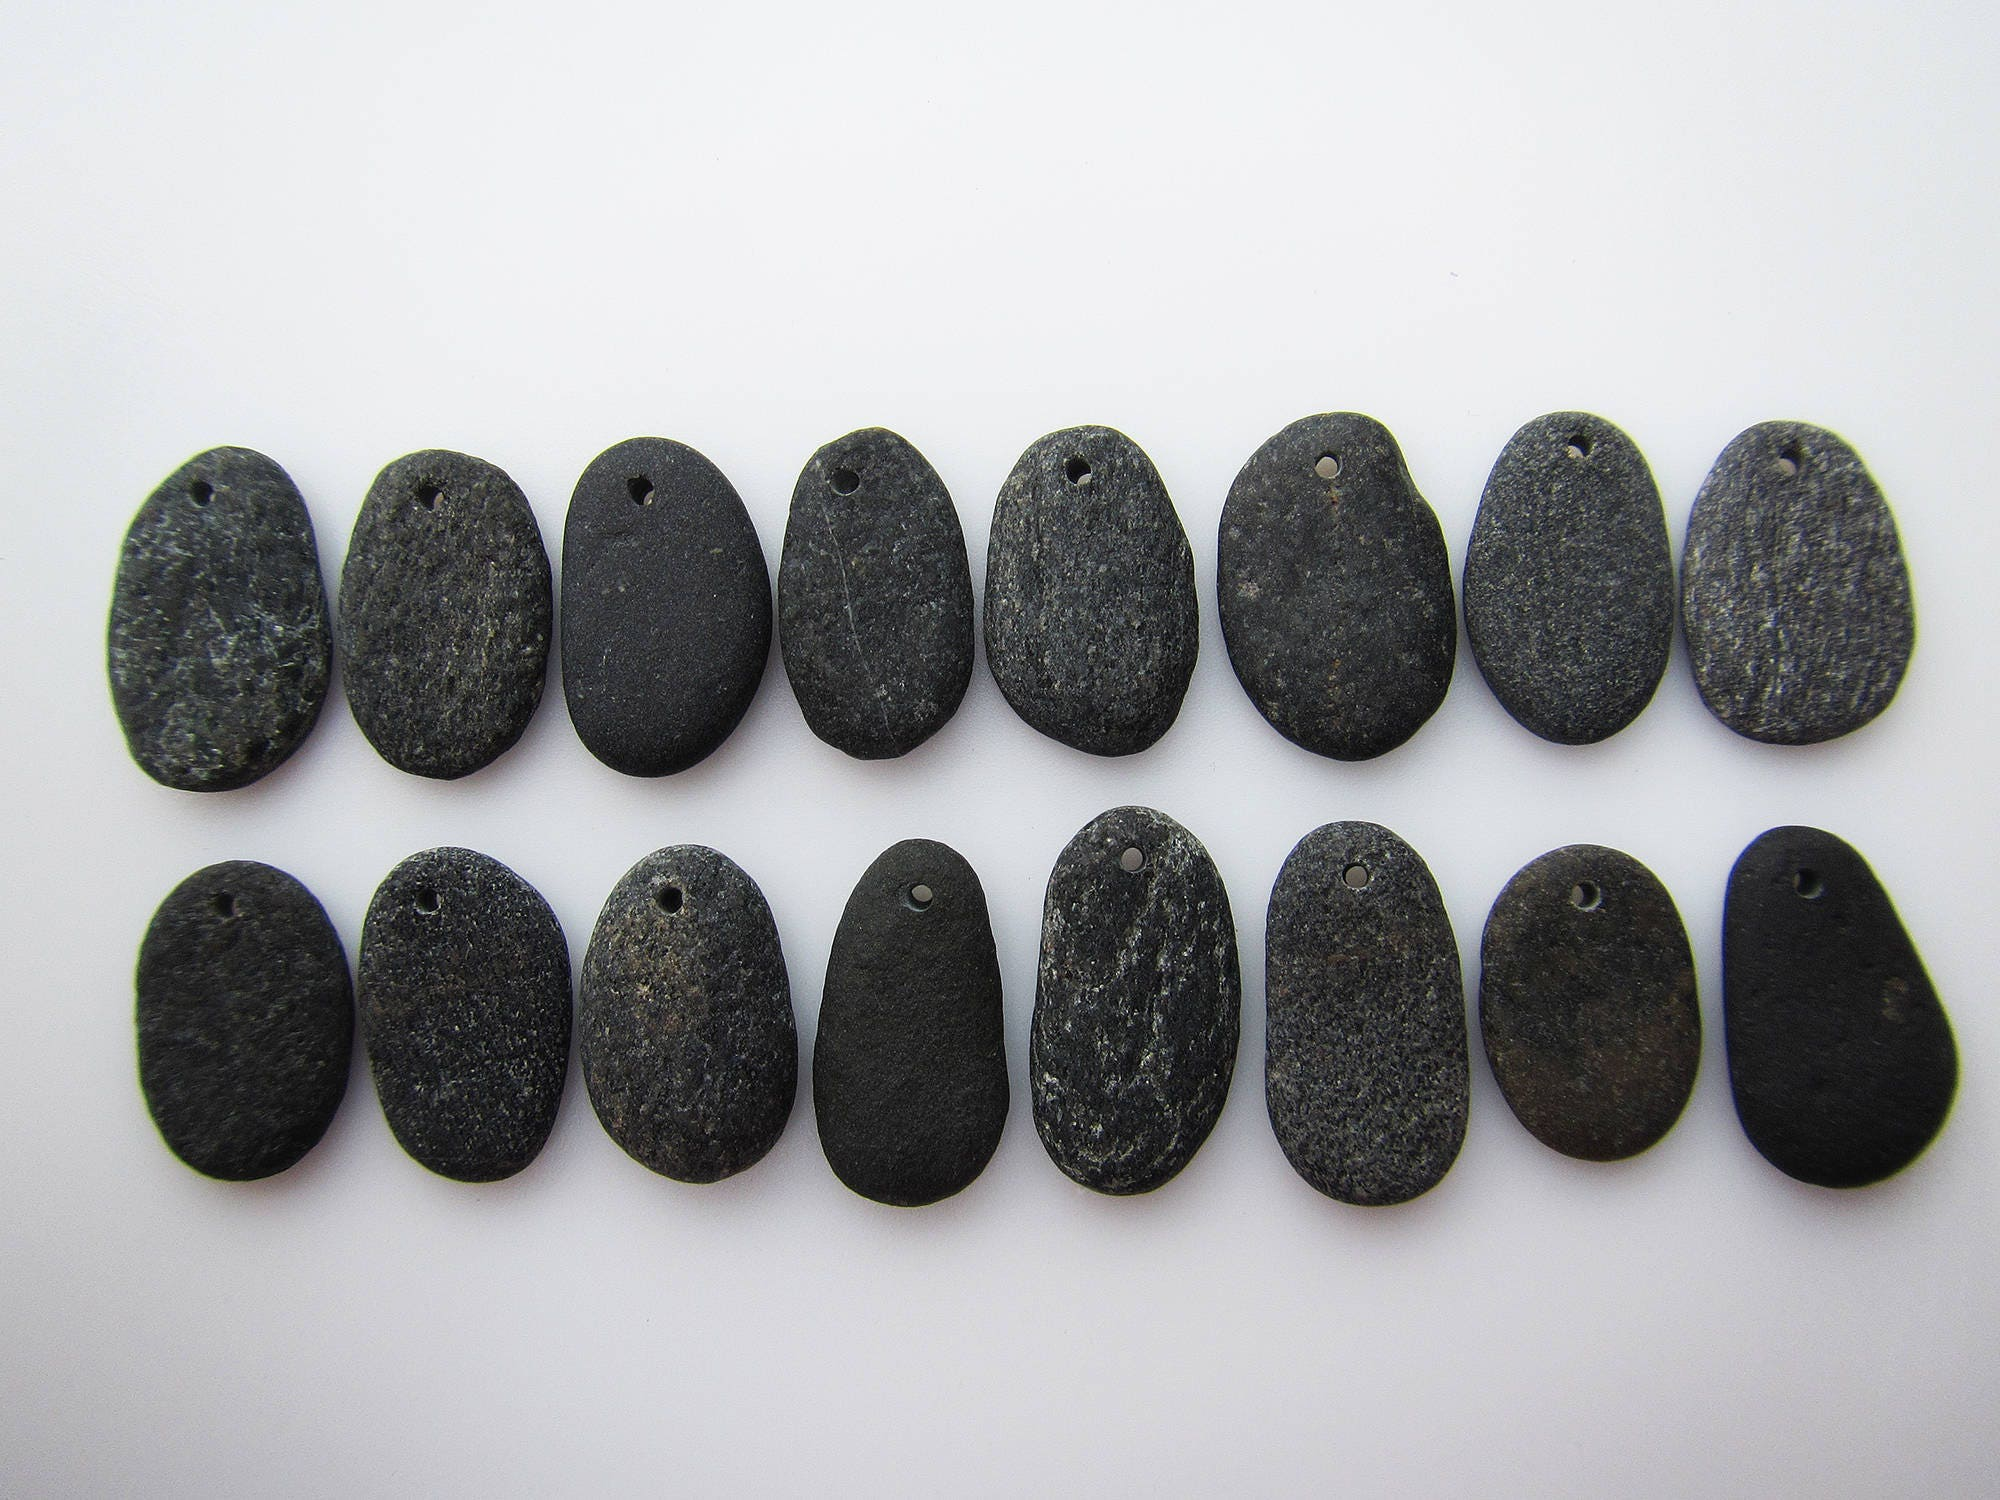 Flat pebbles for crafts - Sold By Designedbysandycoast